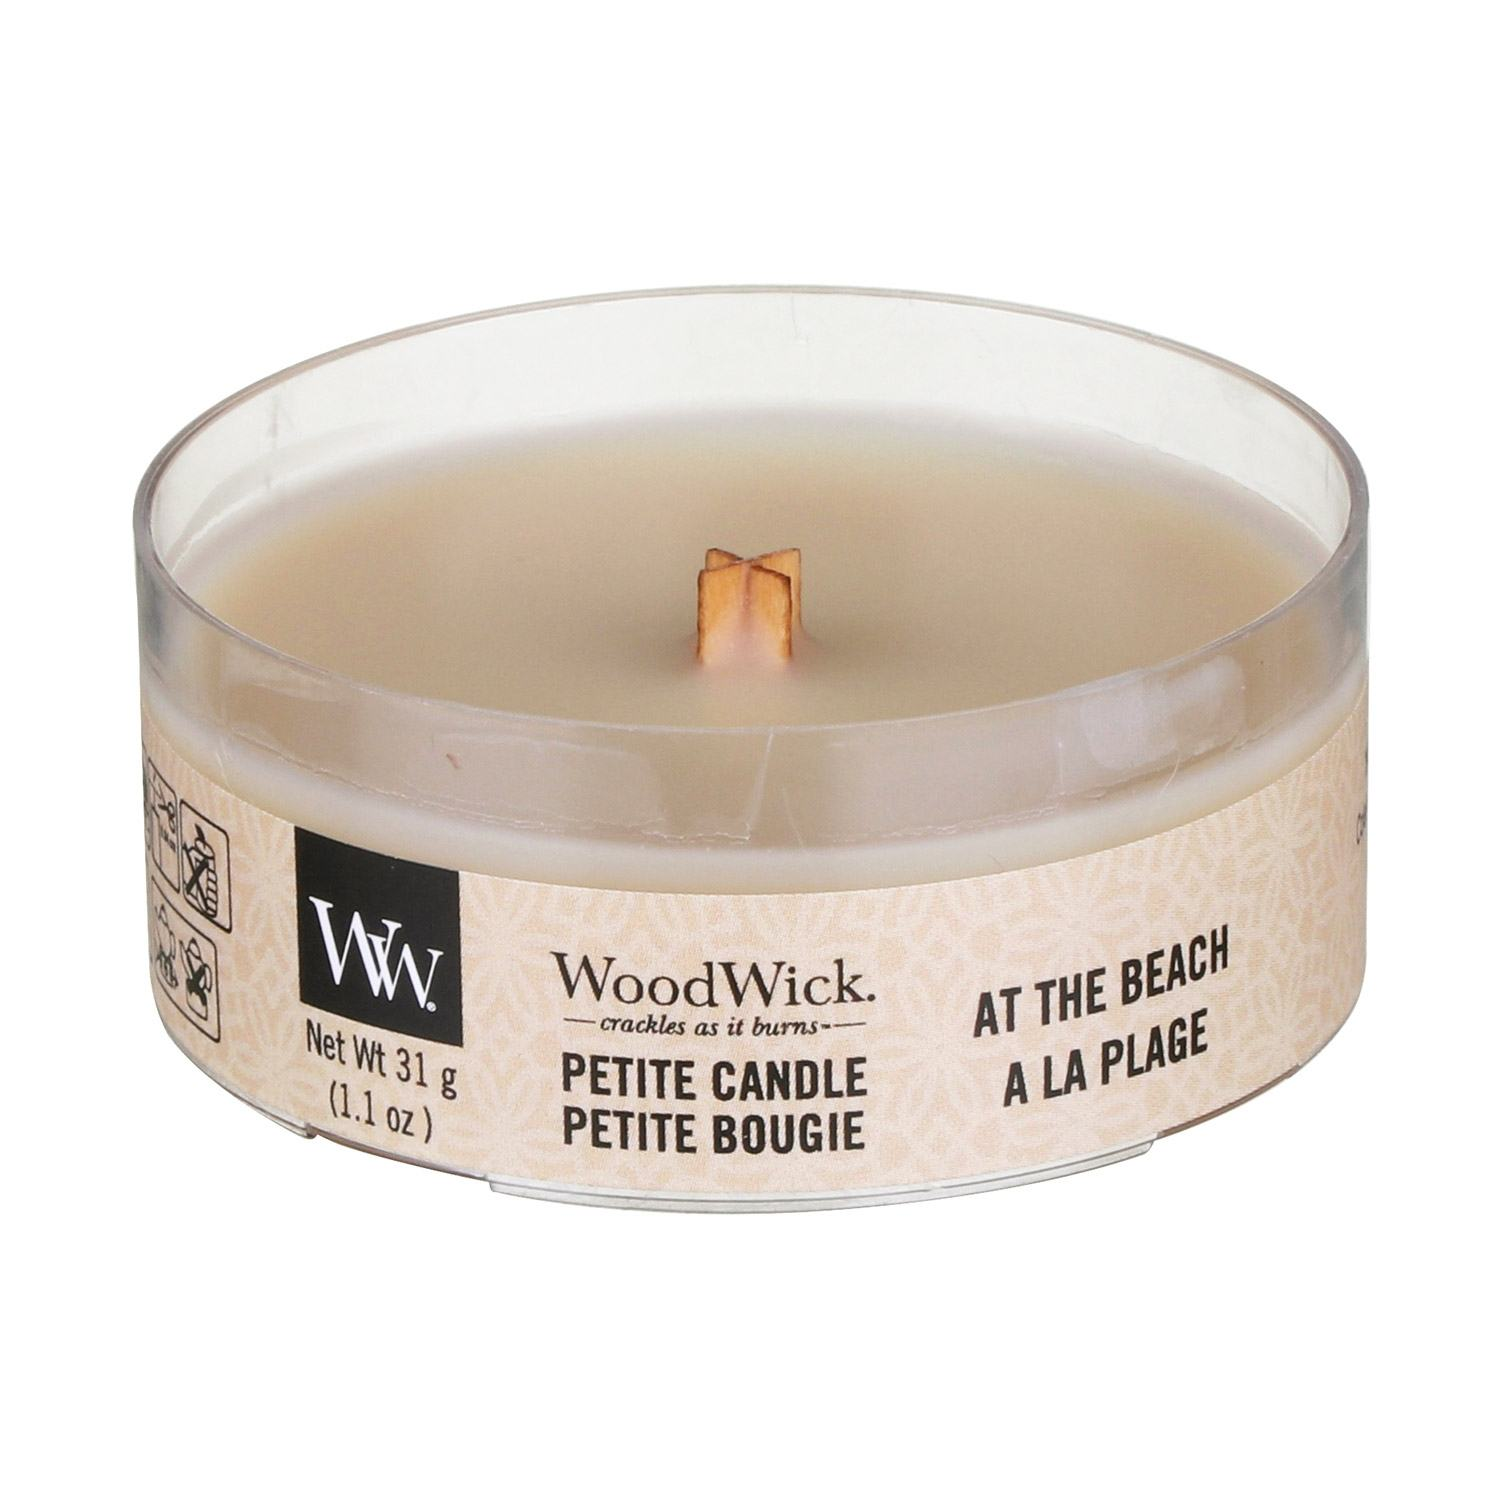 Woodwick At The Beach Petite Candle Temptation Gifts